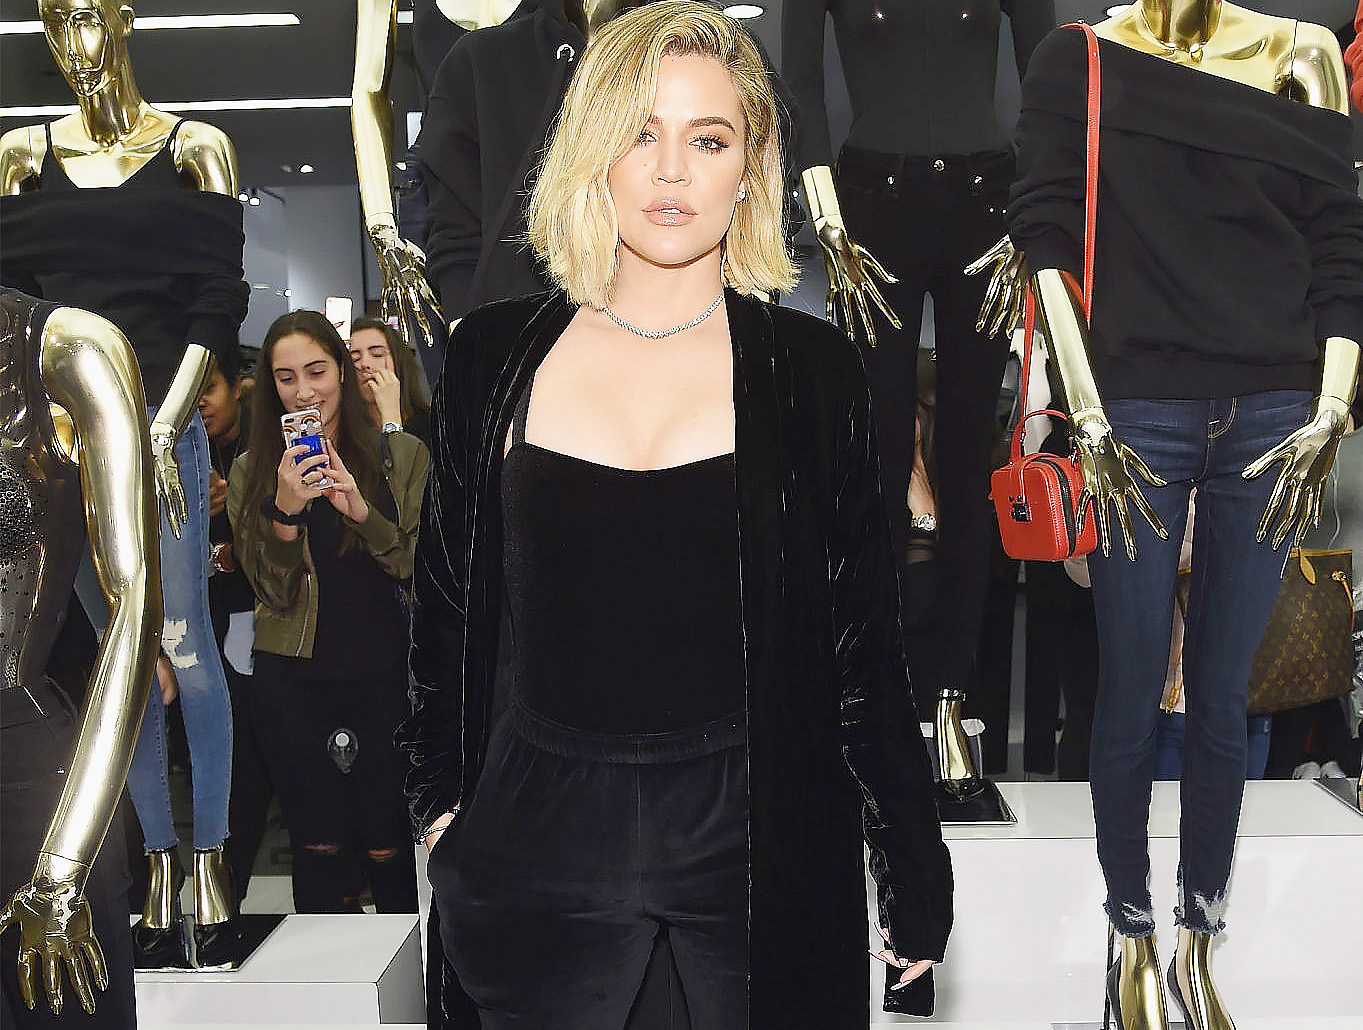 PHOTOS & VIDEO | October 28, 2017 – Good American and Khloe Kardashian Celebrate Bloomingdale's  Collaboration